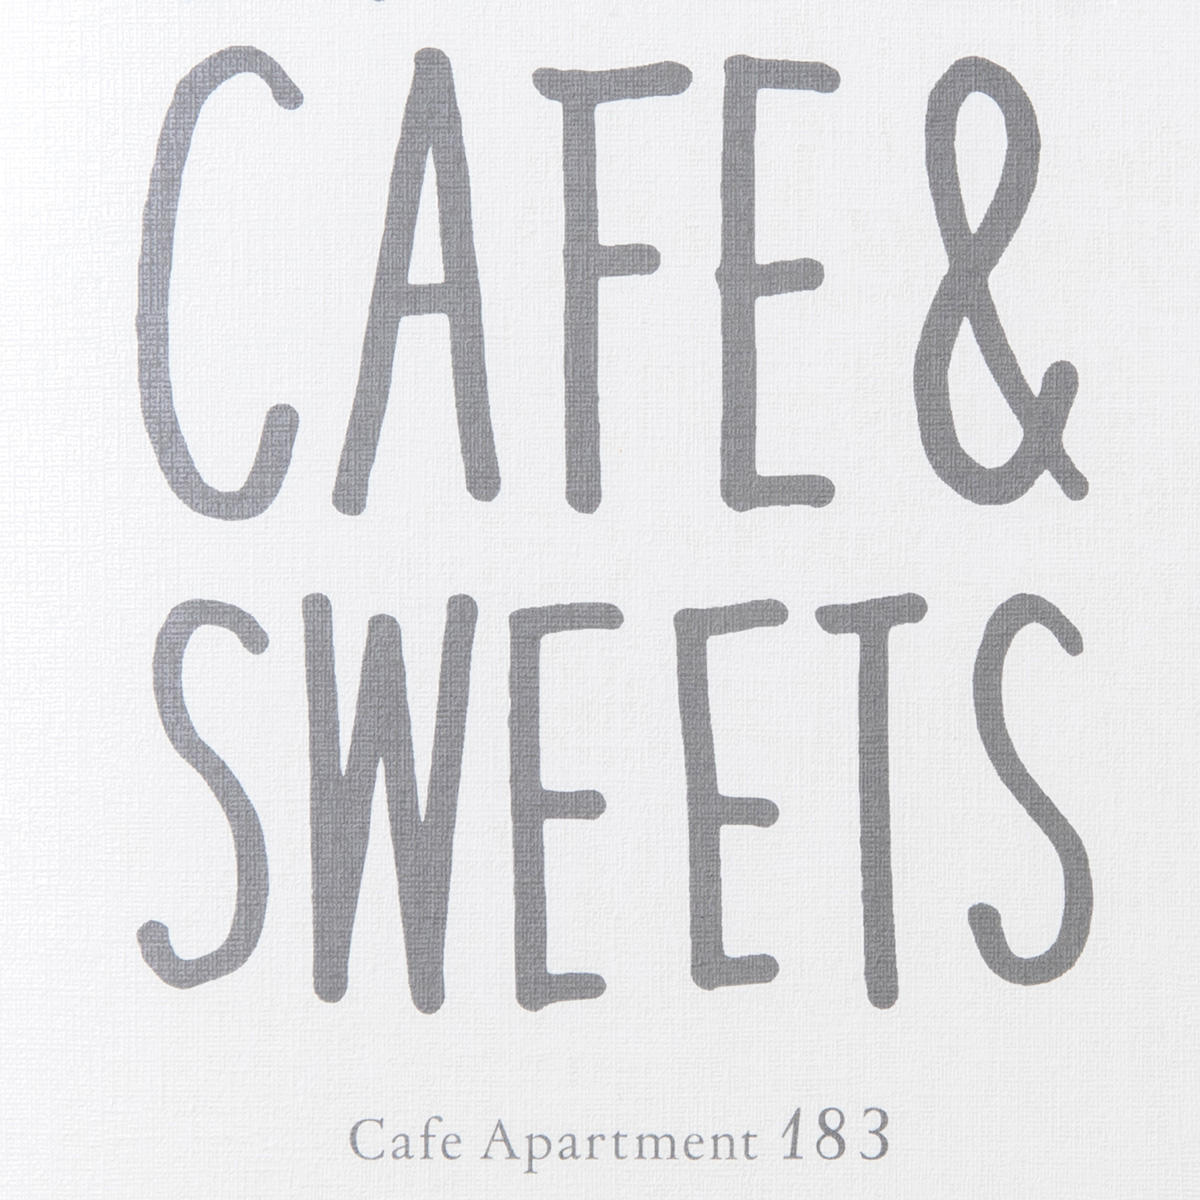 Cafe Apartment183/ メニューデザイン